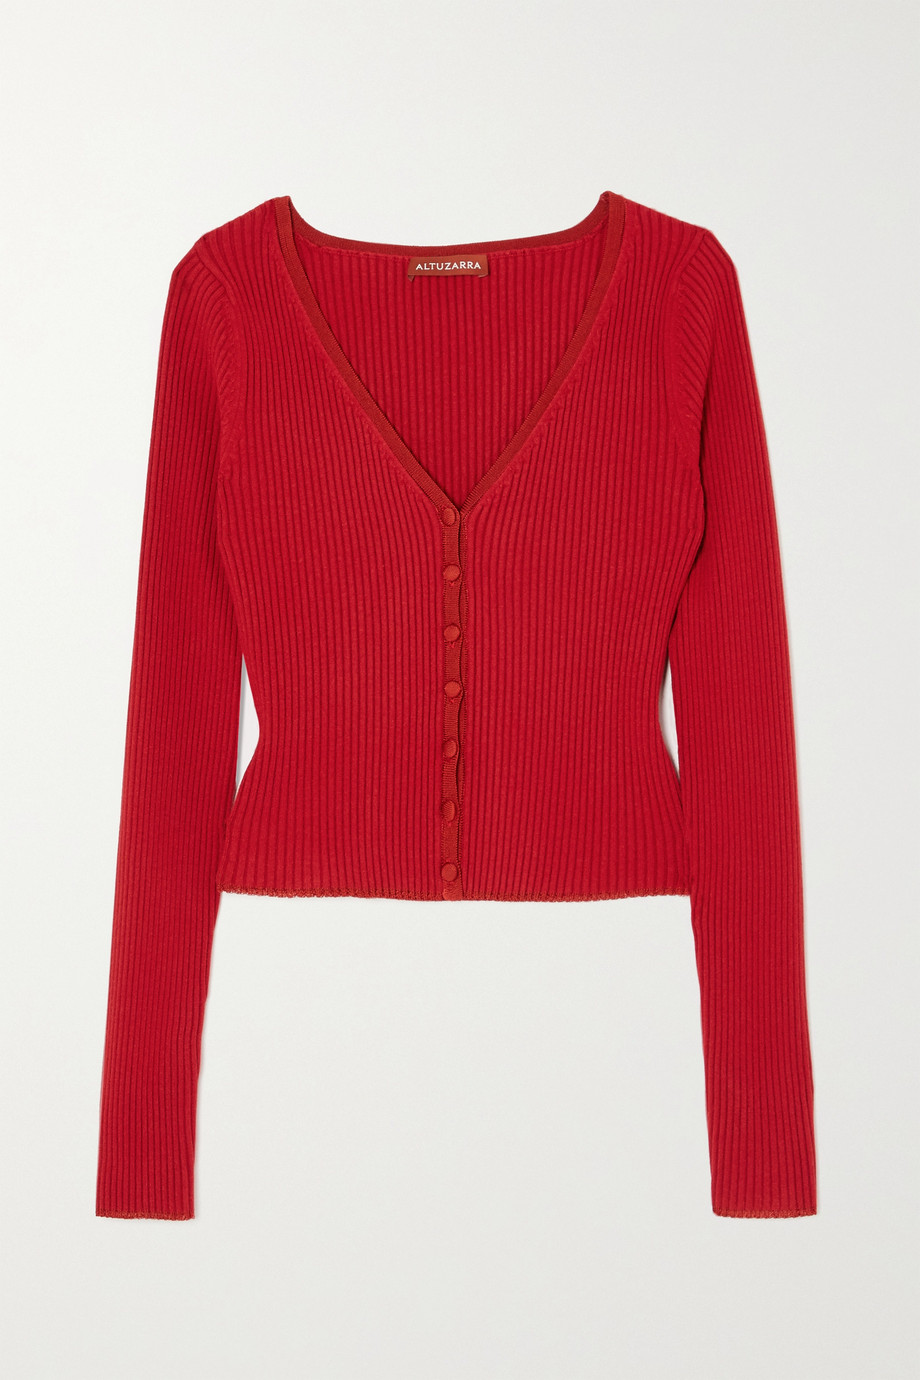 Altuzarra Eva ribbed stretch-knit cardigan